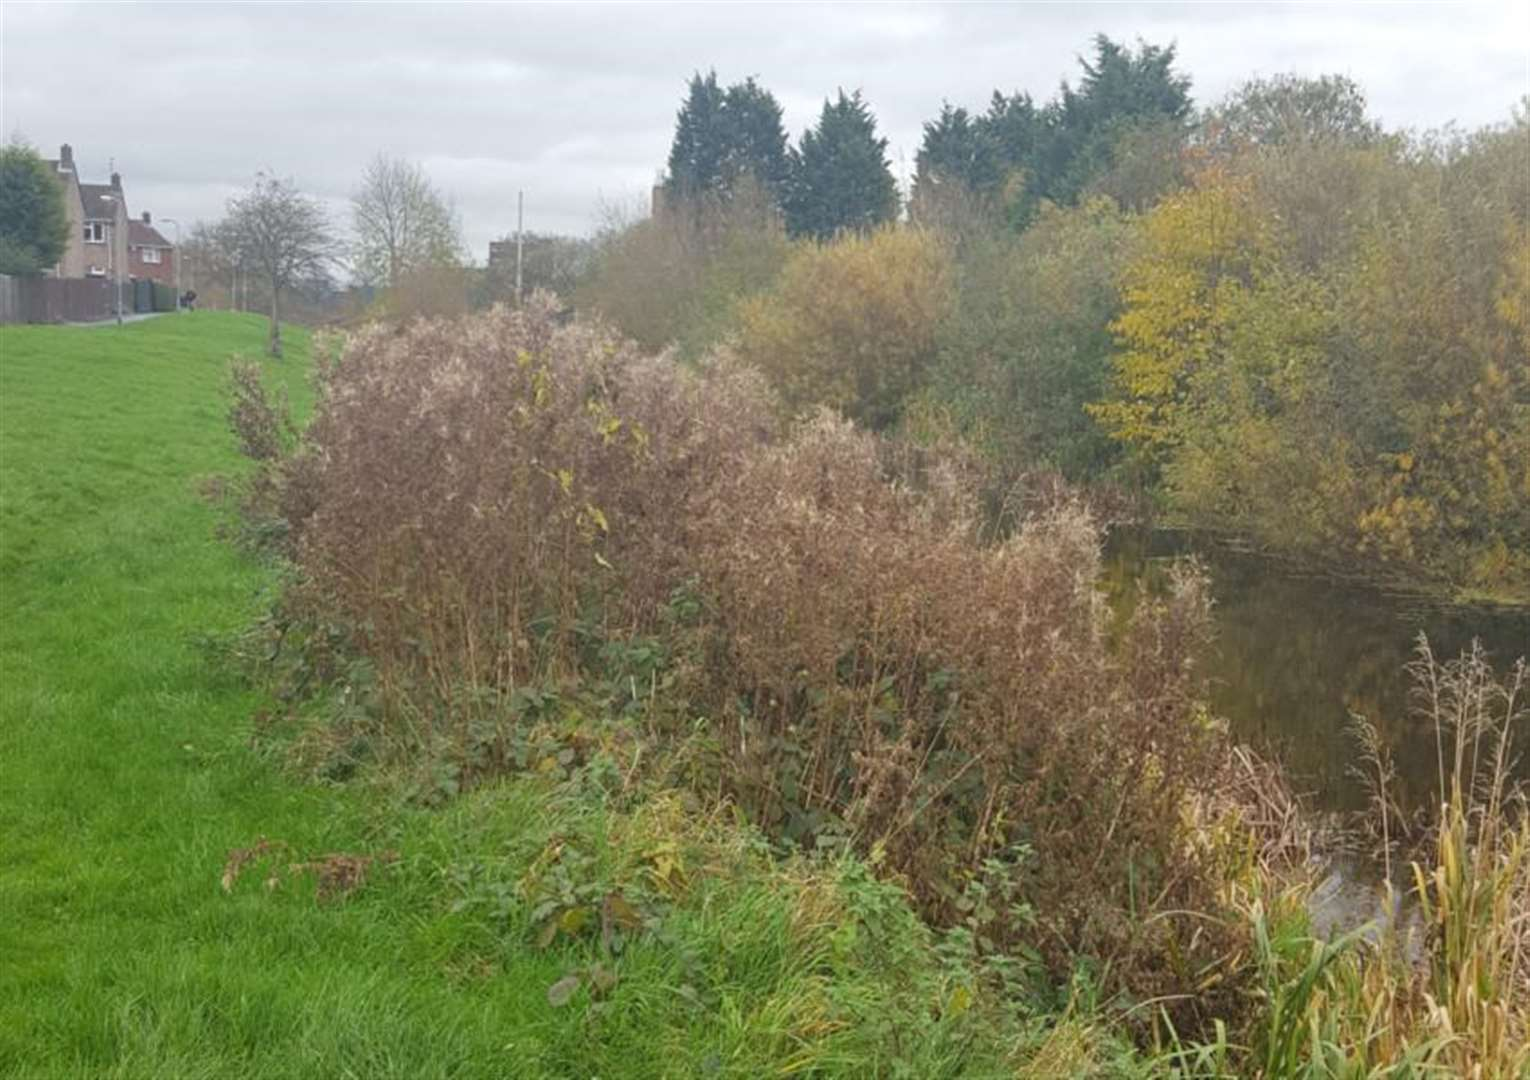 Overgrown banks of Grantham Canal prompt fears for children's lives